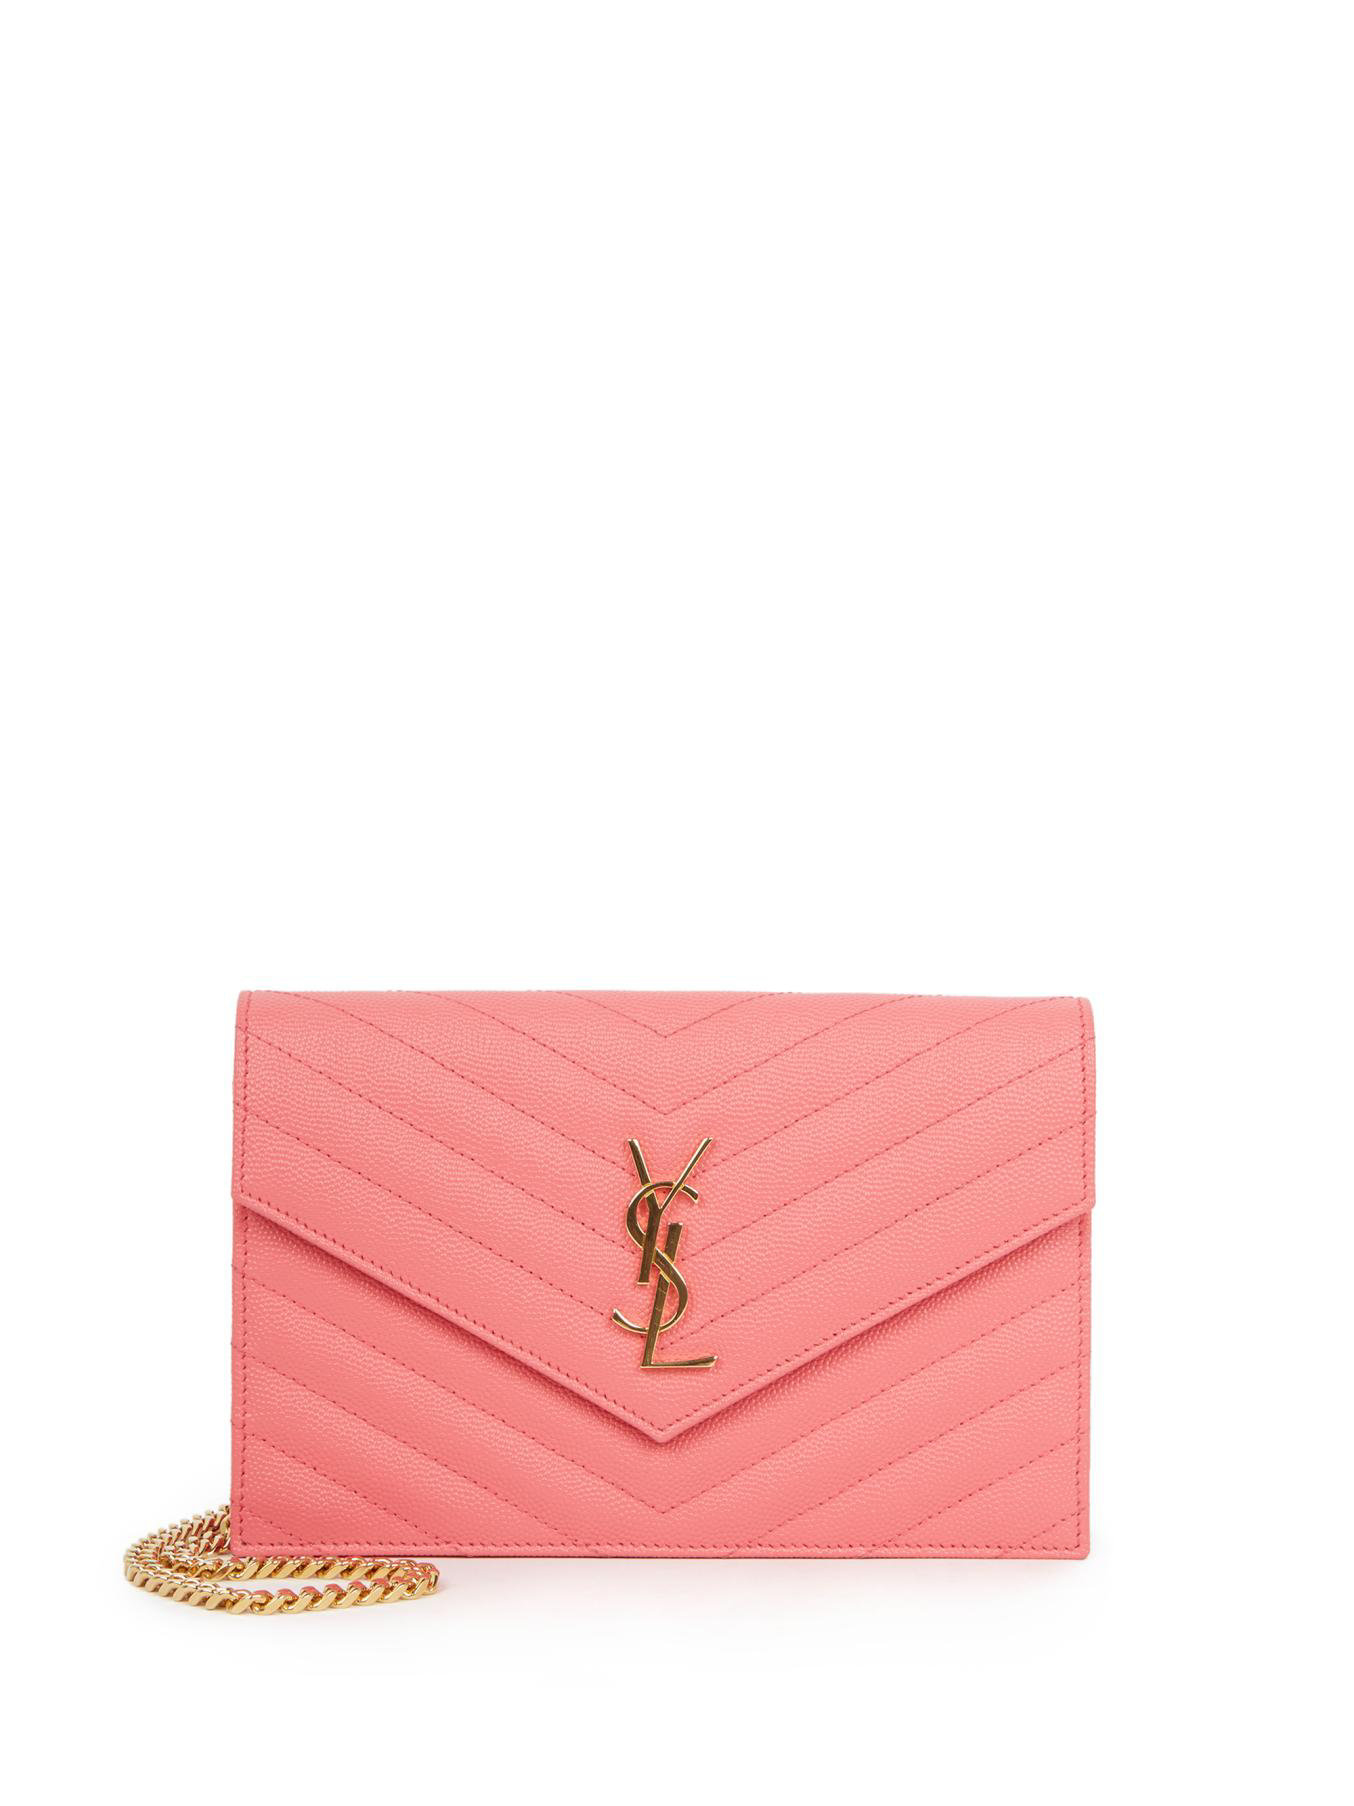 Monogram Saint Laurent Chain Wallet In Silver Grained Metallic Leather